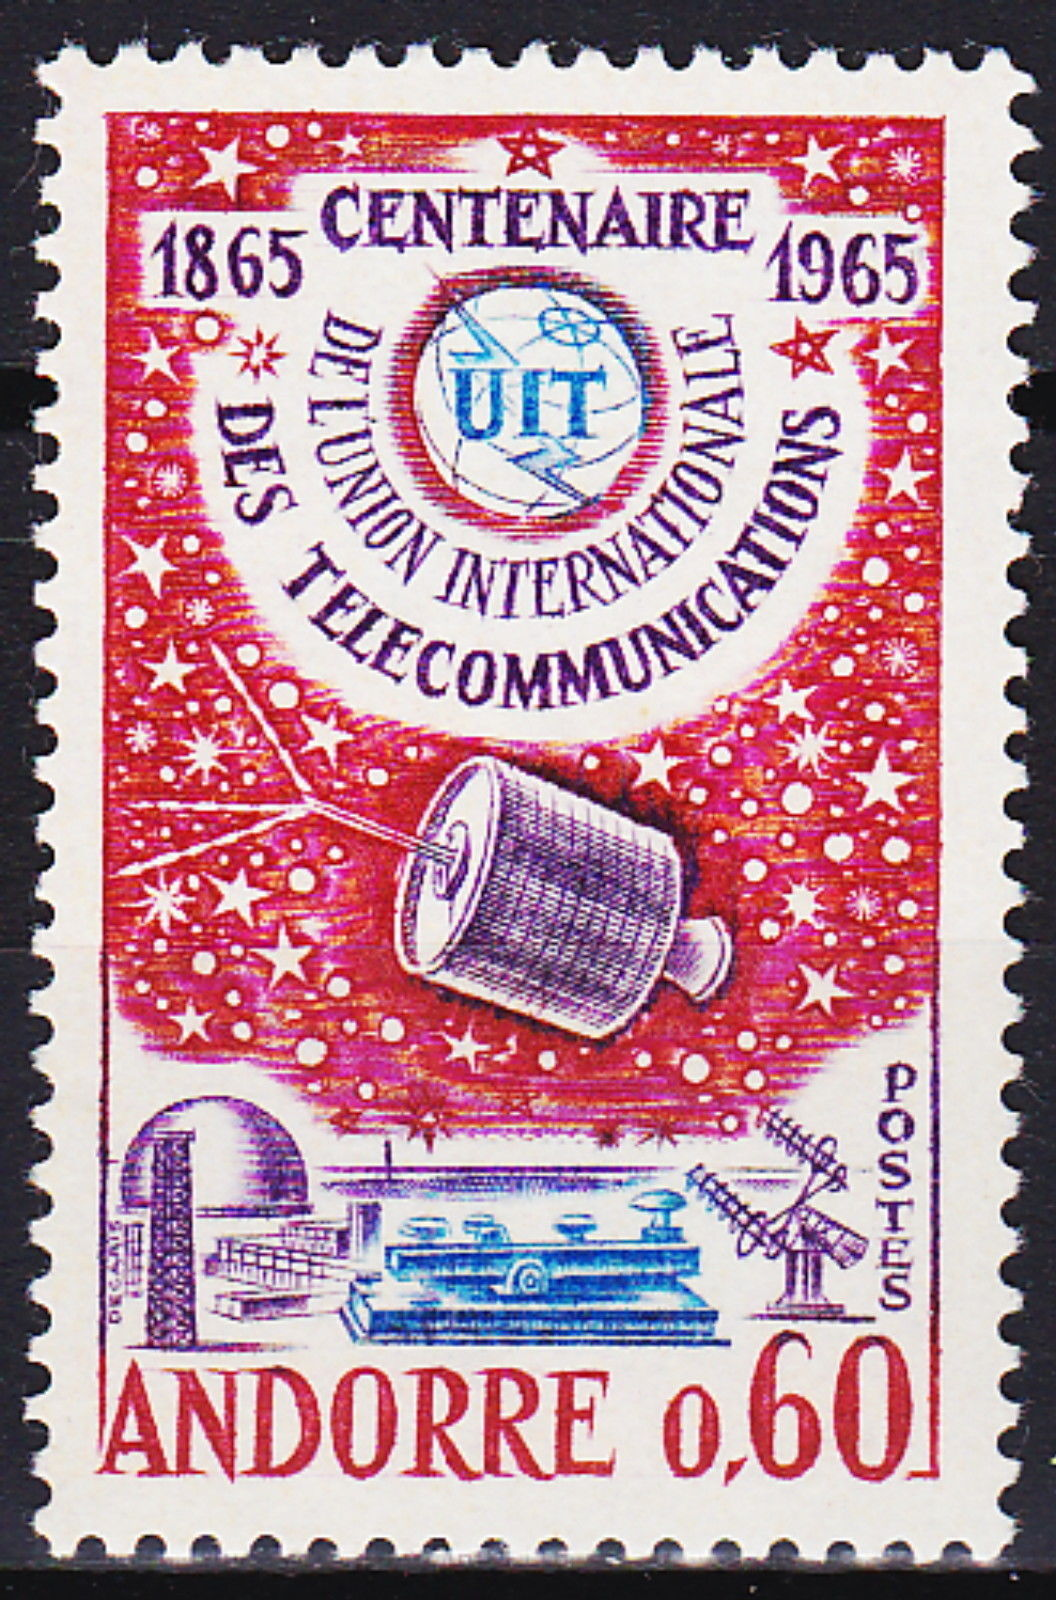 Andorra-French 1965 ITU Centenary